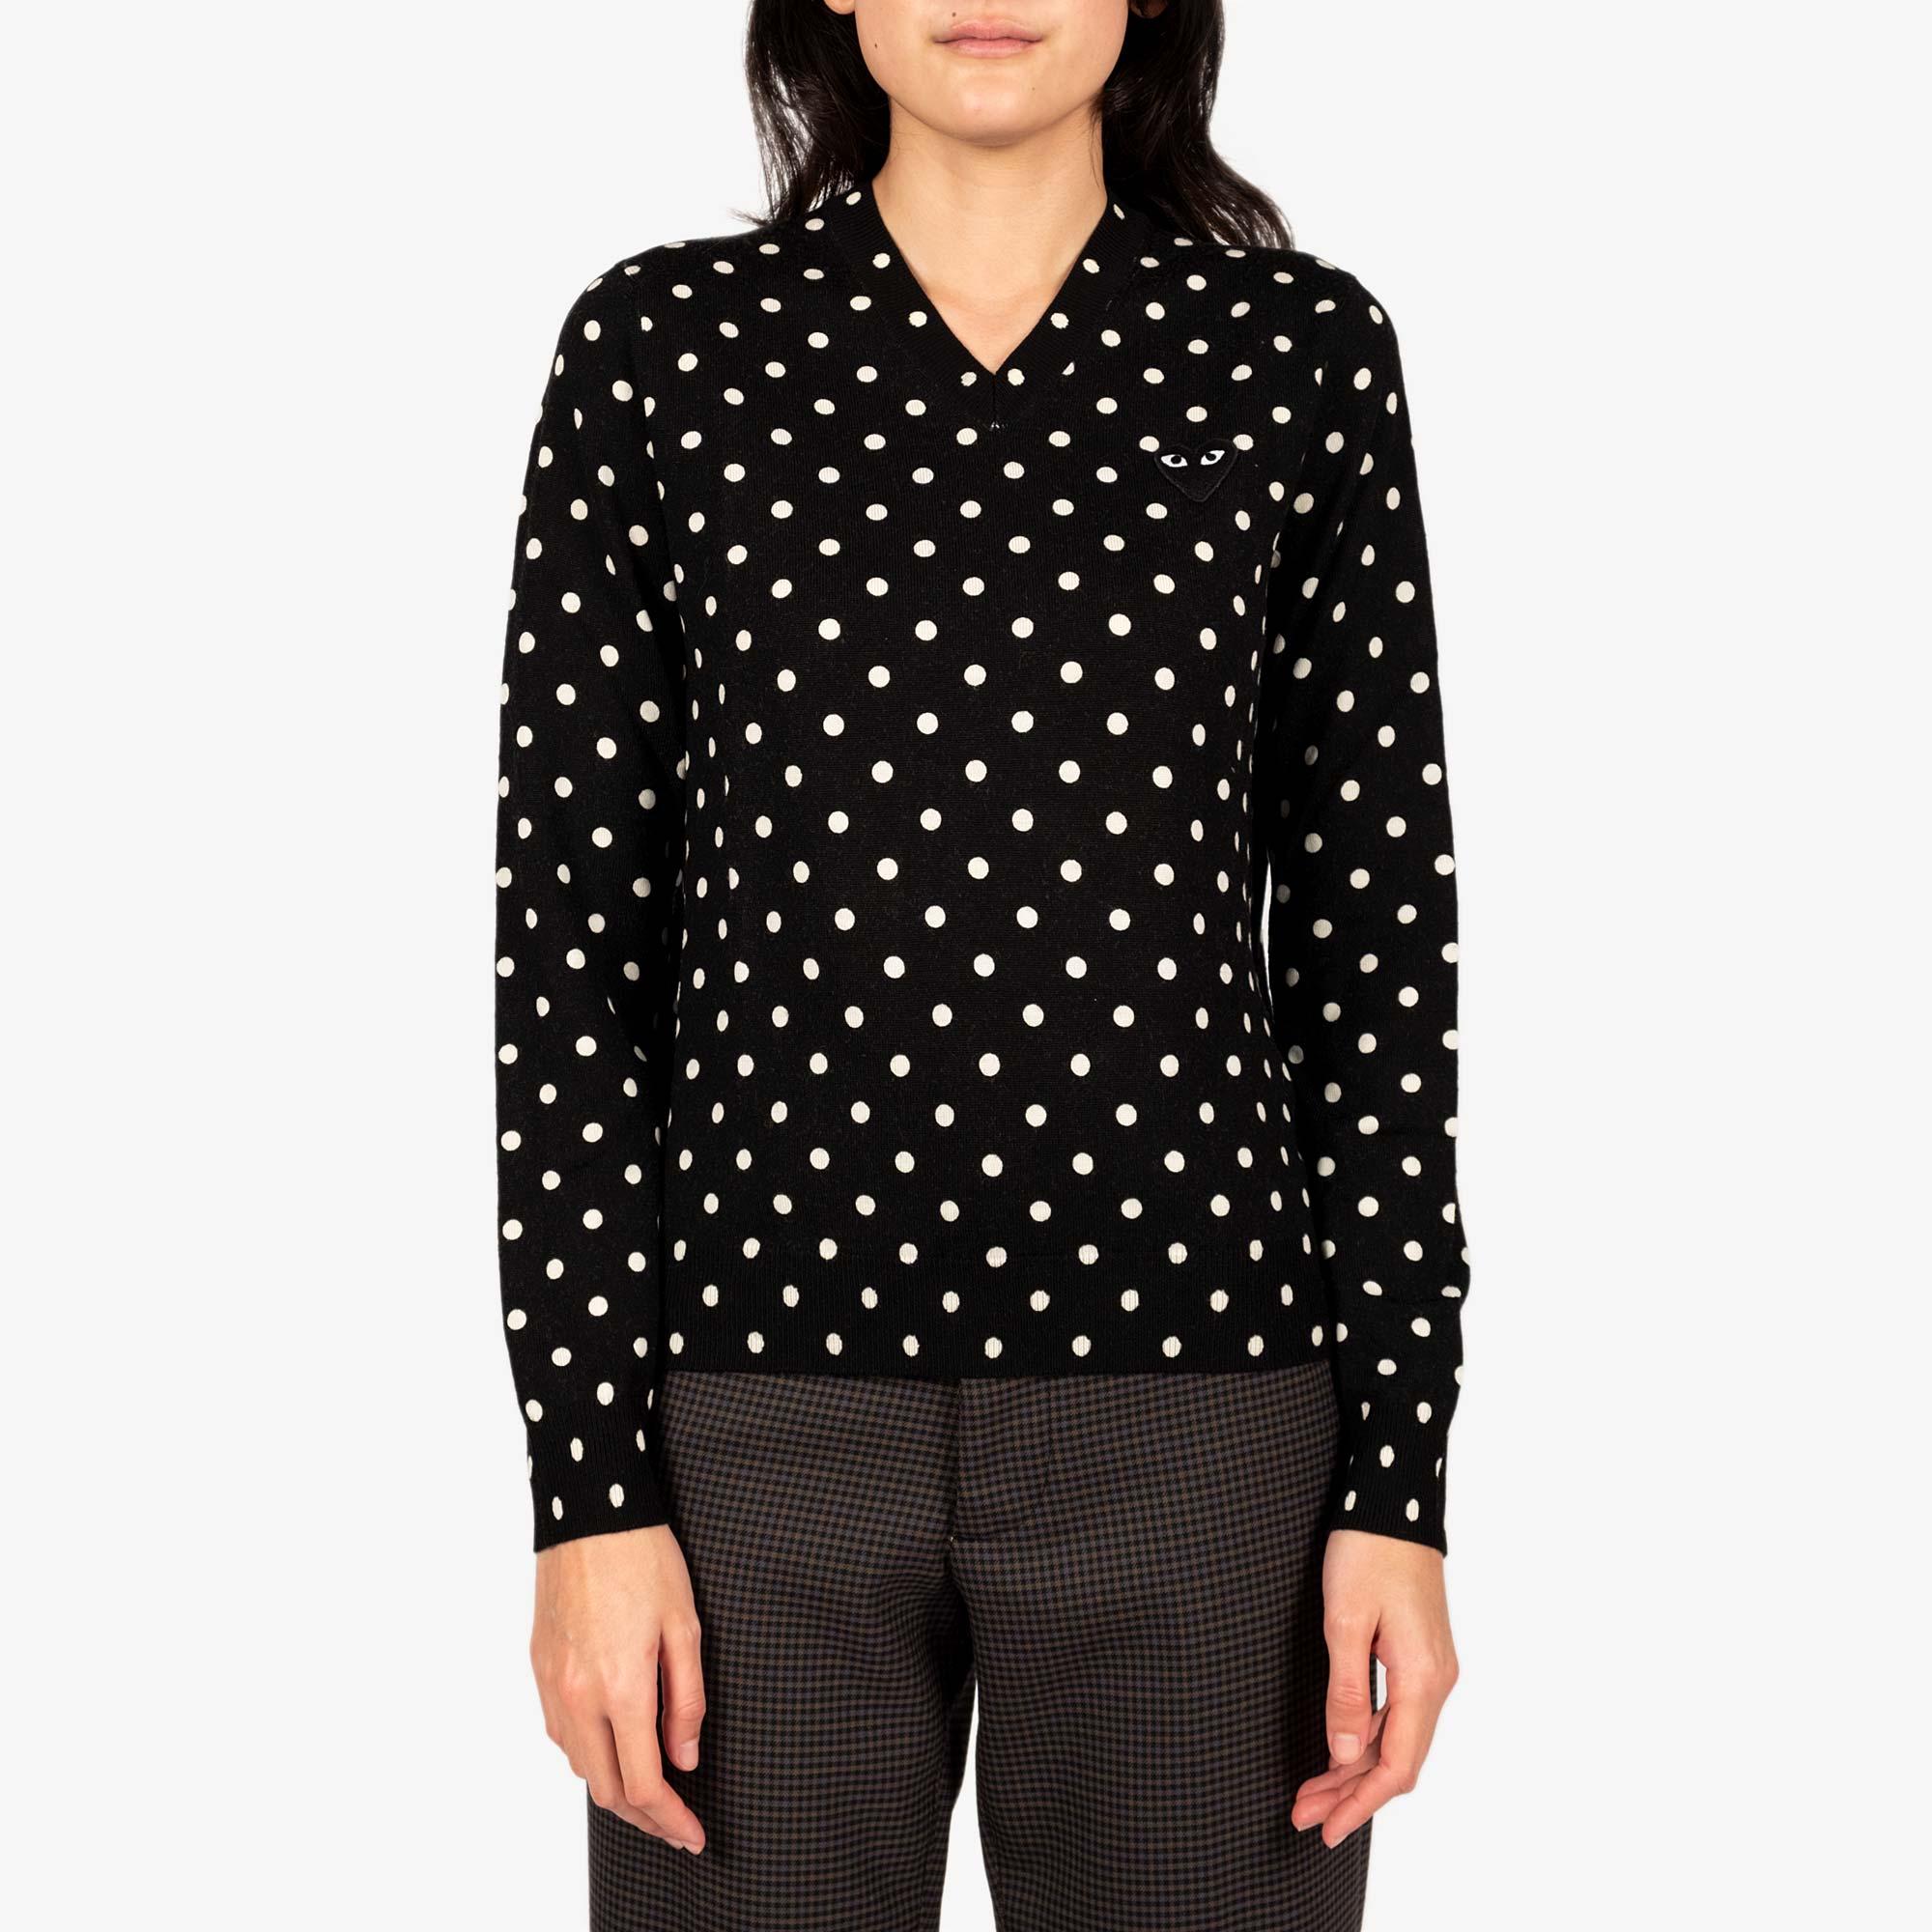 Comme des Garçons - PLAY Womens Black Emblem Polka Dot V-Neck Pullover - Black 1